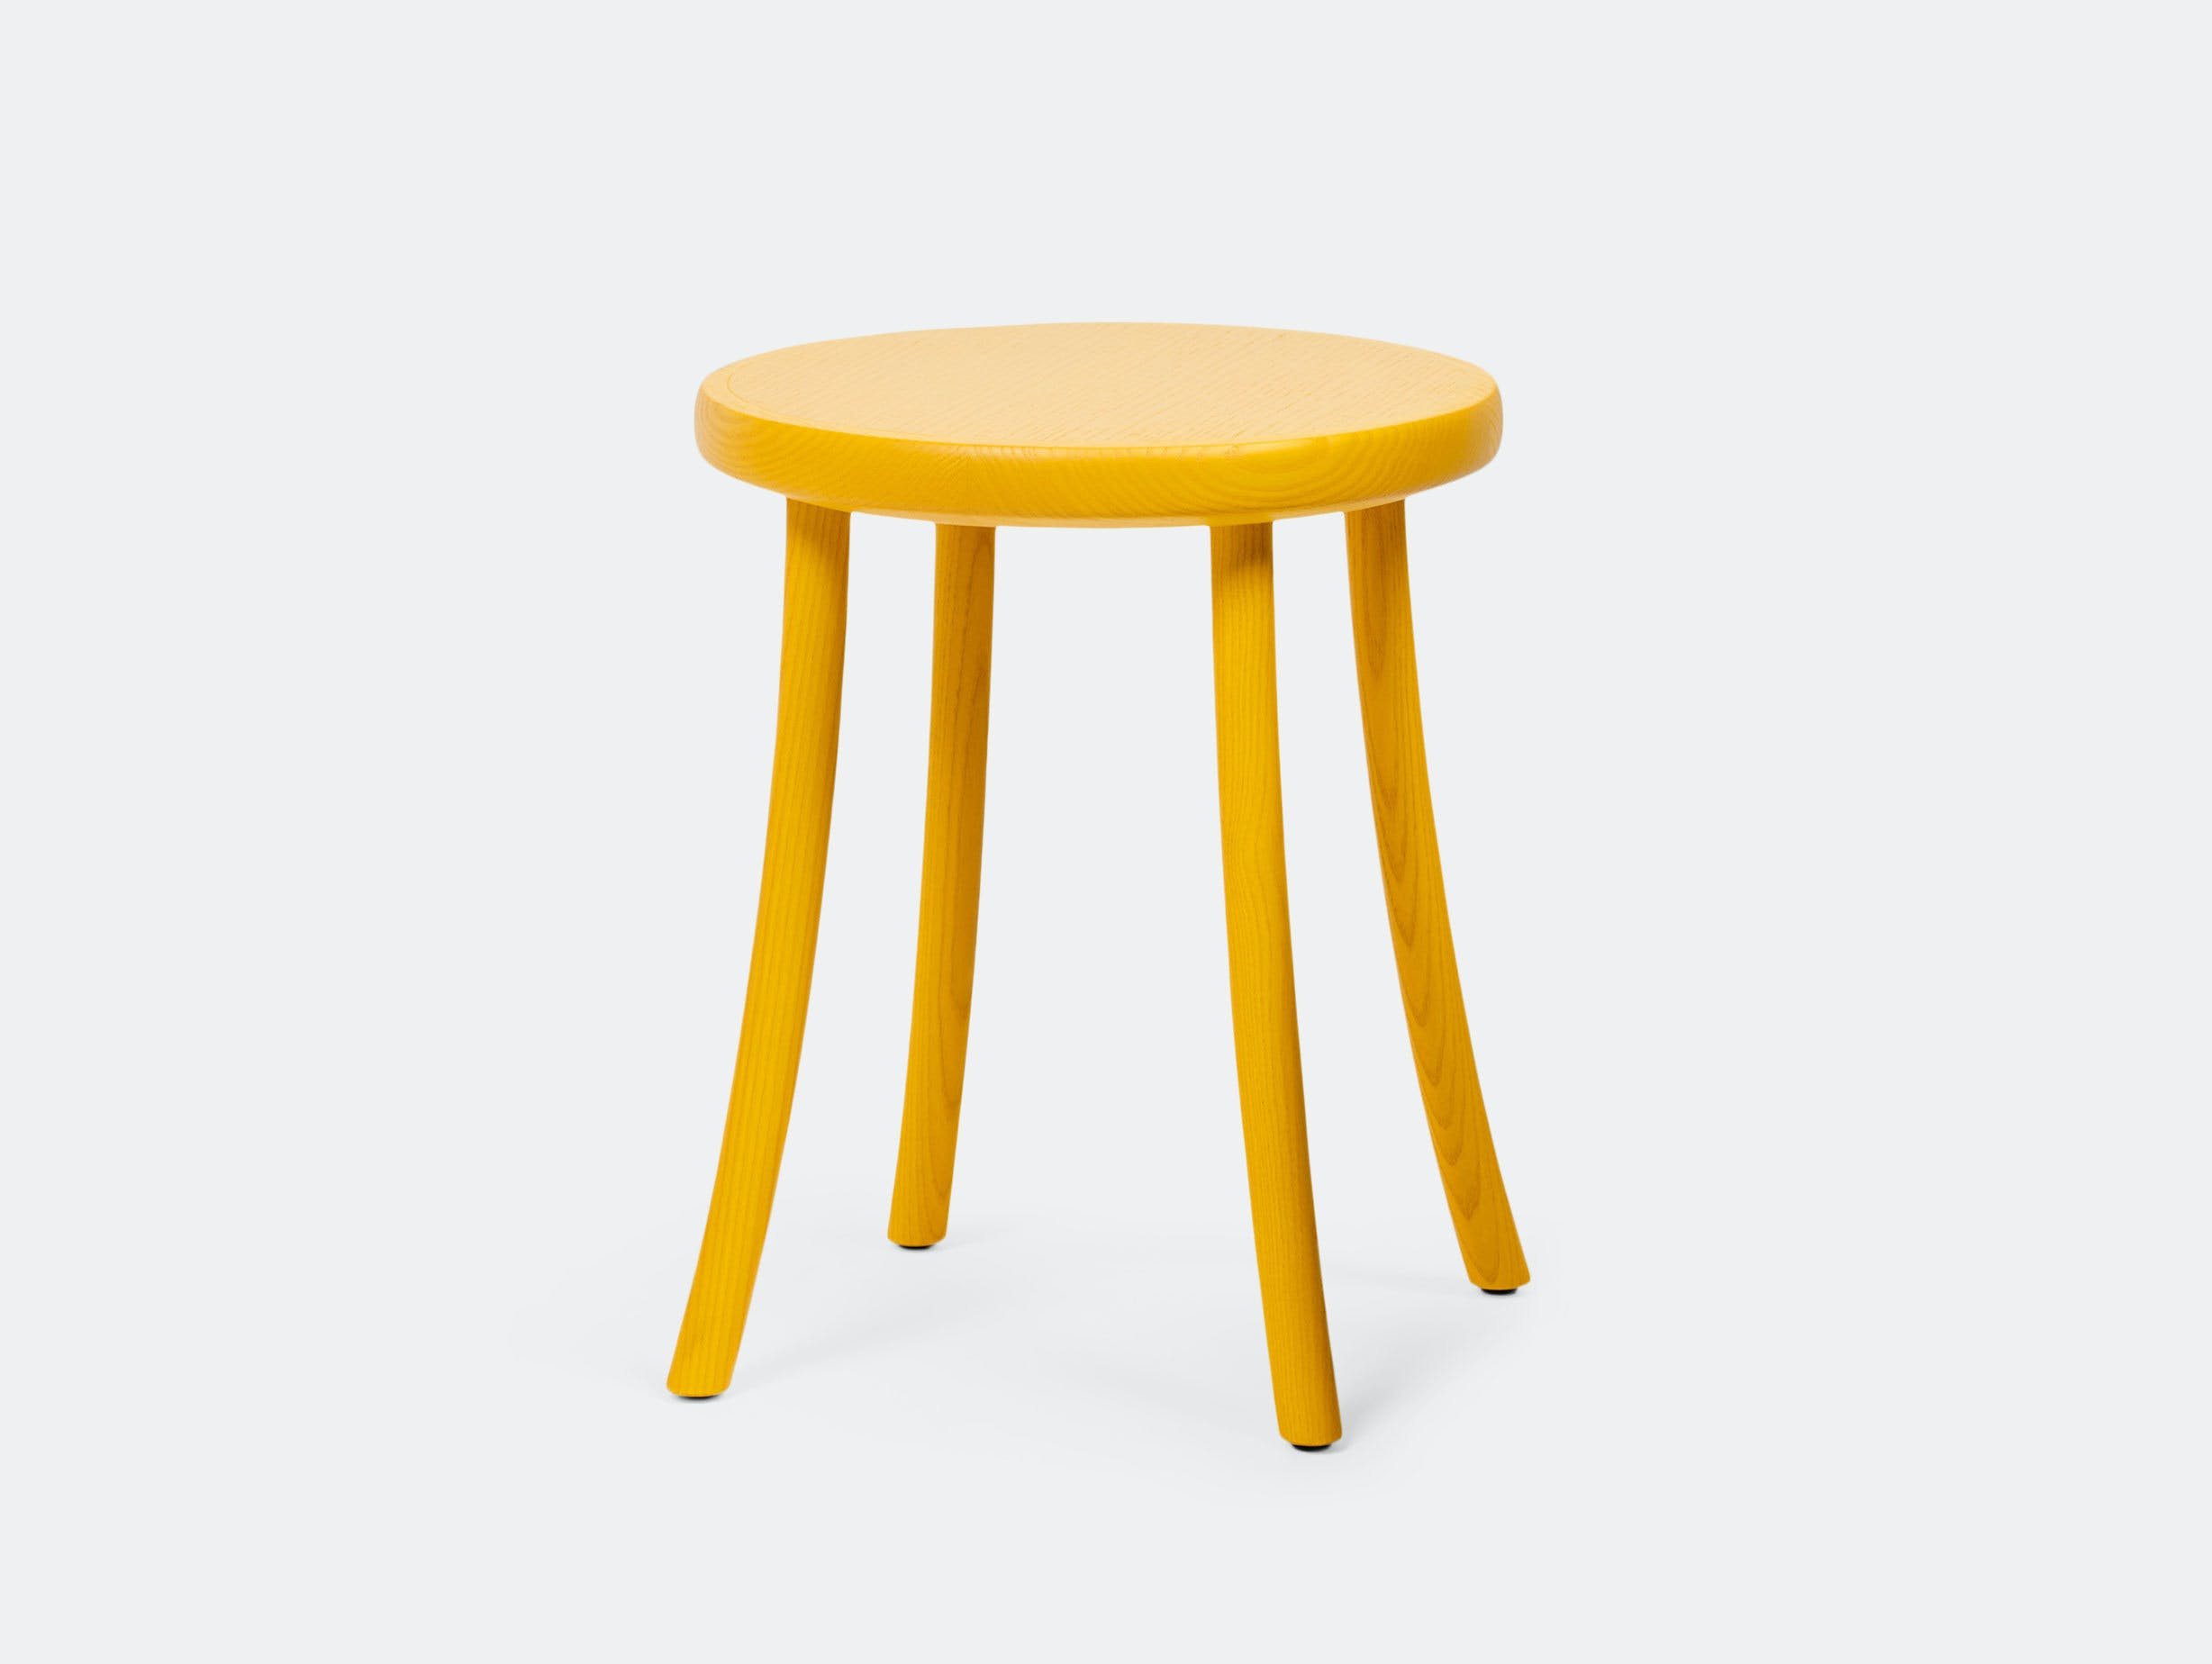 Mattiazzi Zampa Low Stool Yellow 2 Jasper Morrison